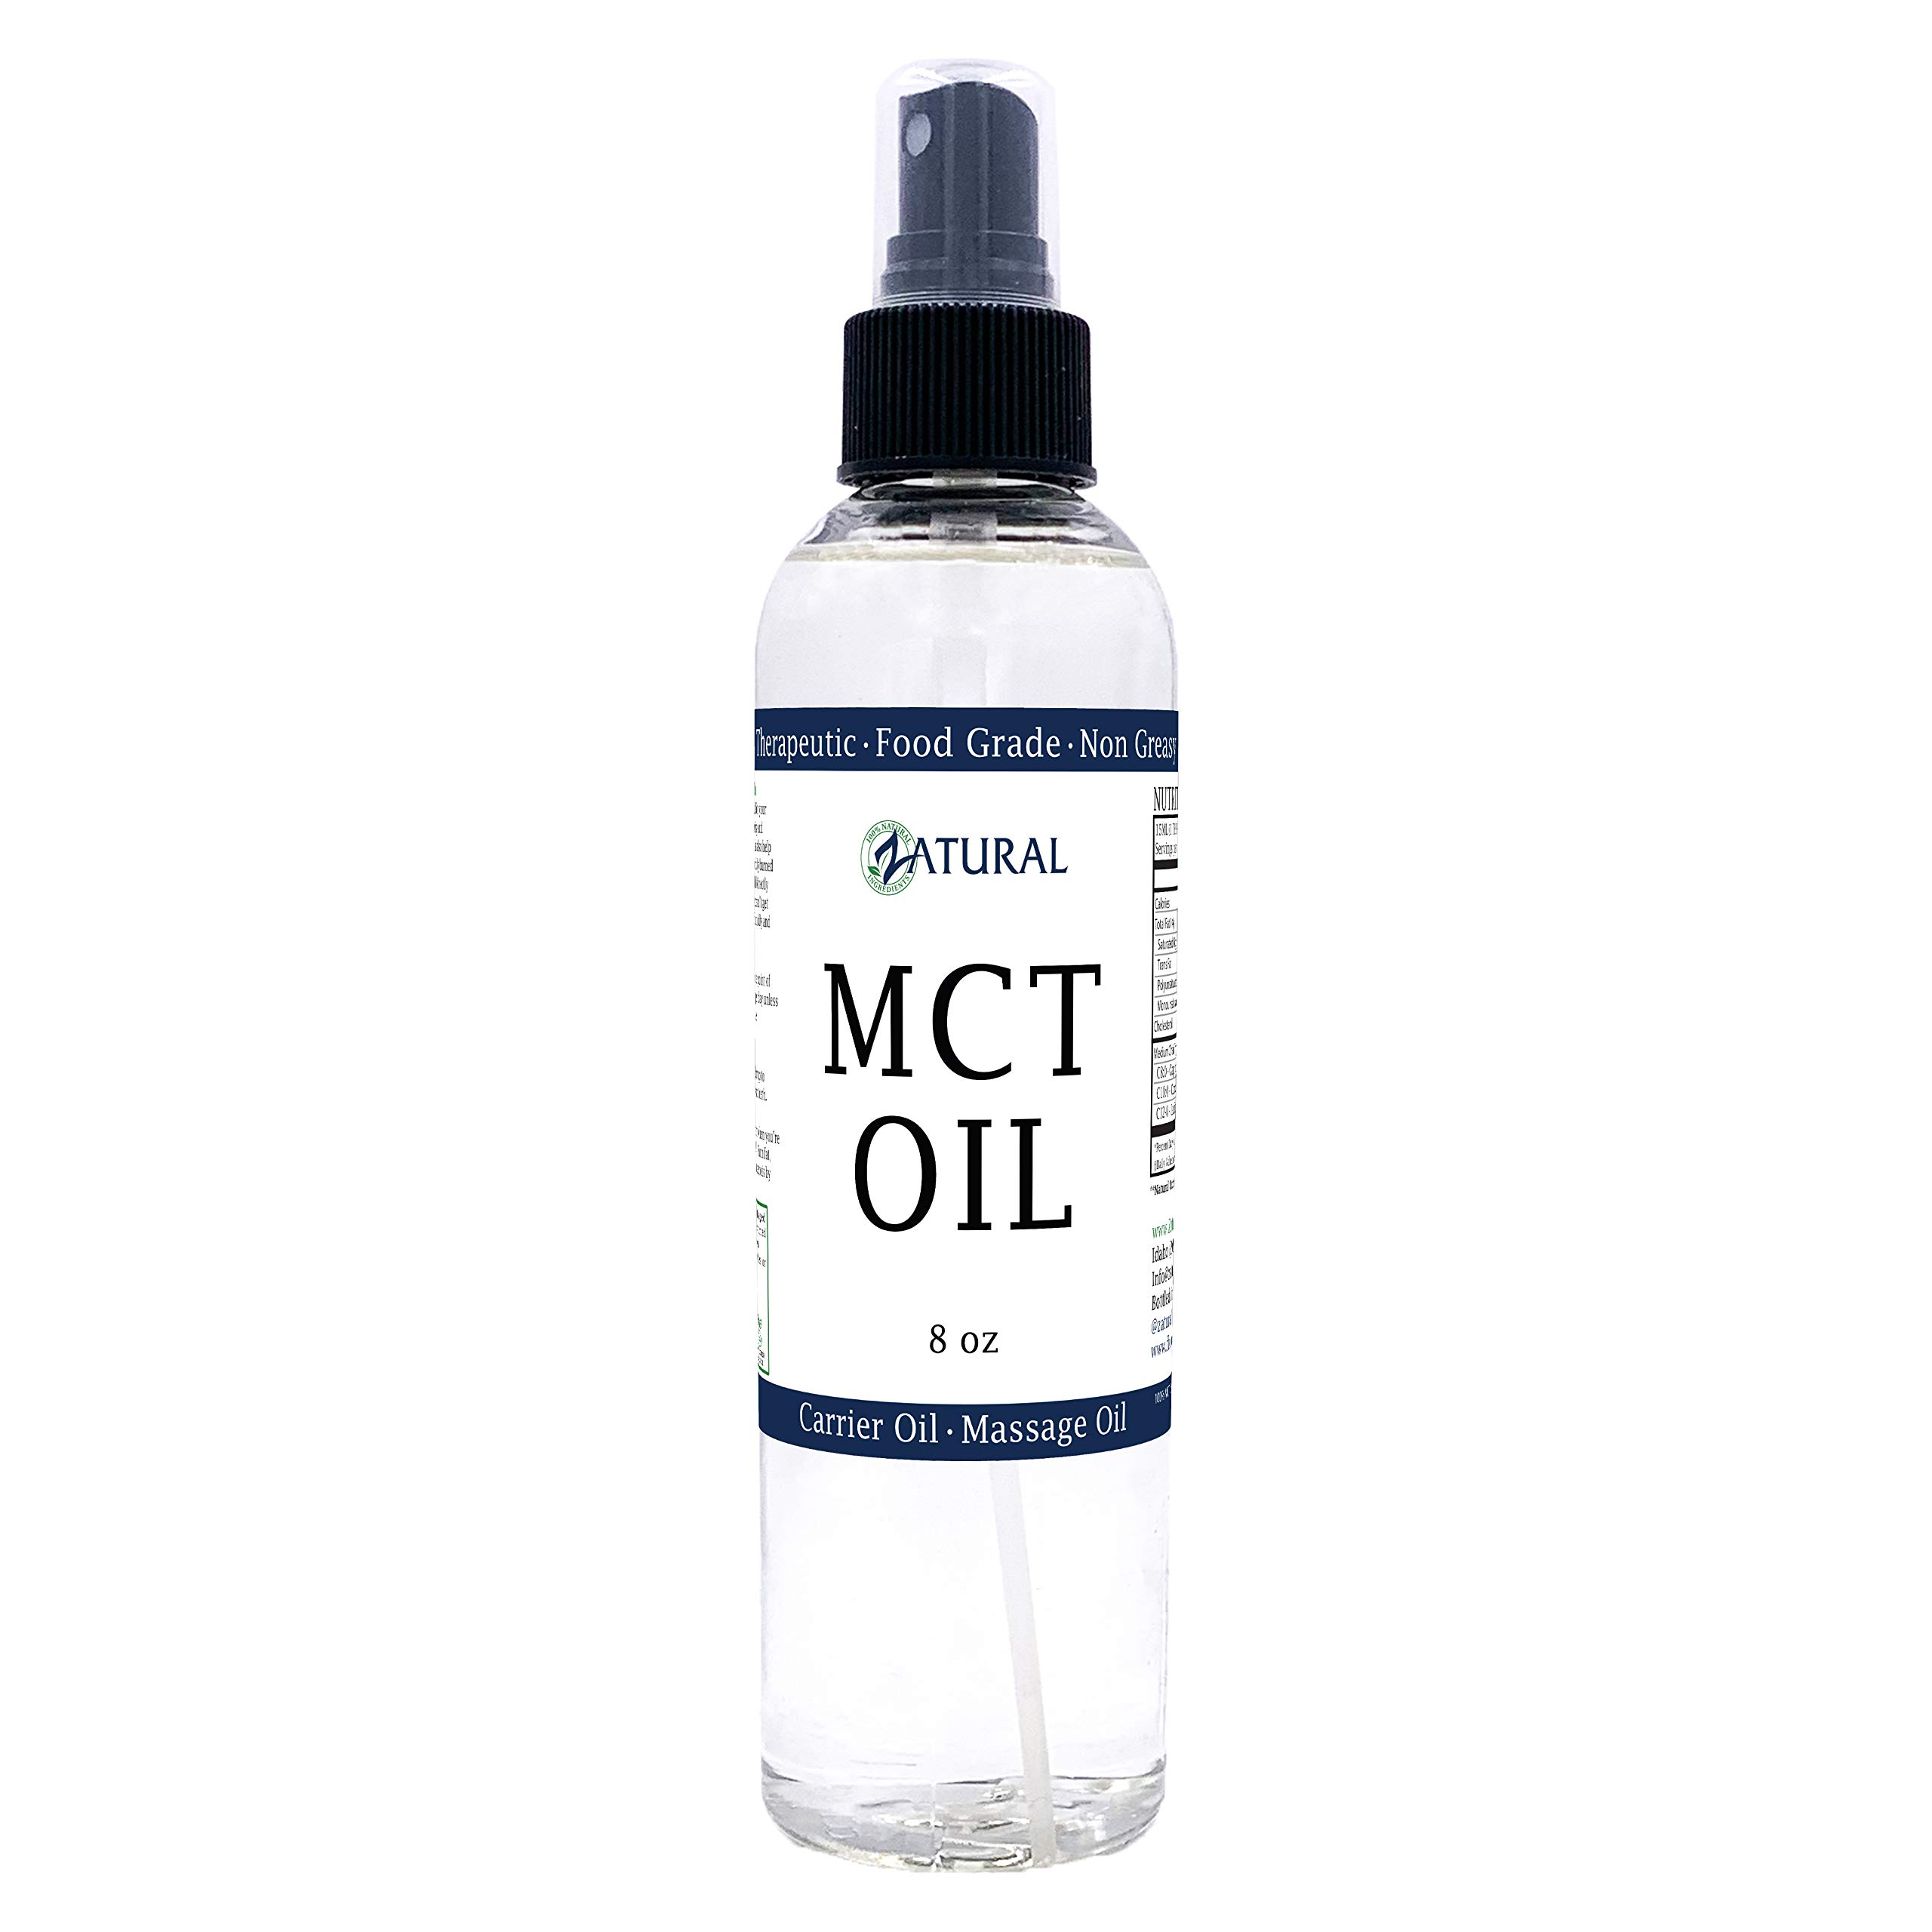 MCT Oil, Certified Food and Therapeutic Grade, Carrier Oil, Massage Oil, Hydrating Oil, Hair Oil, 0 Additives, Pure MCT Oil (8 Ounce)